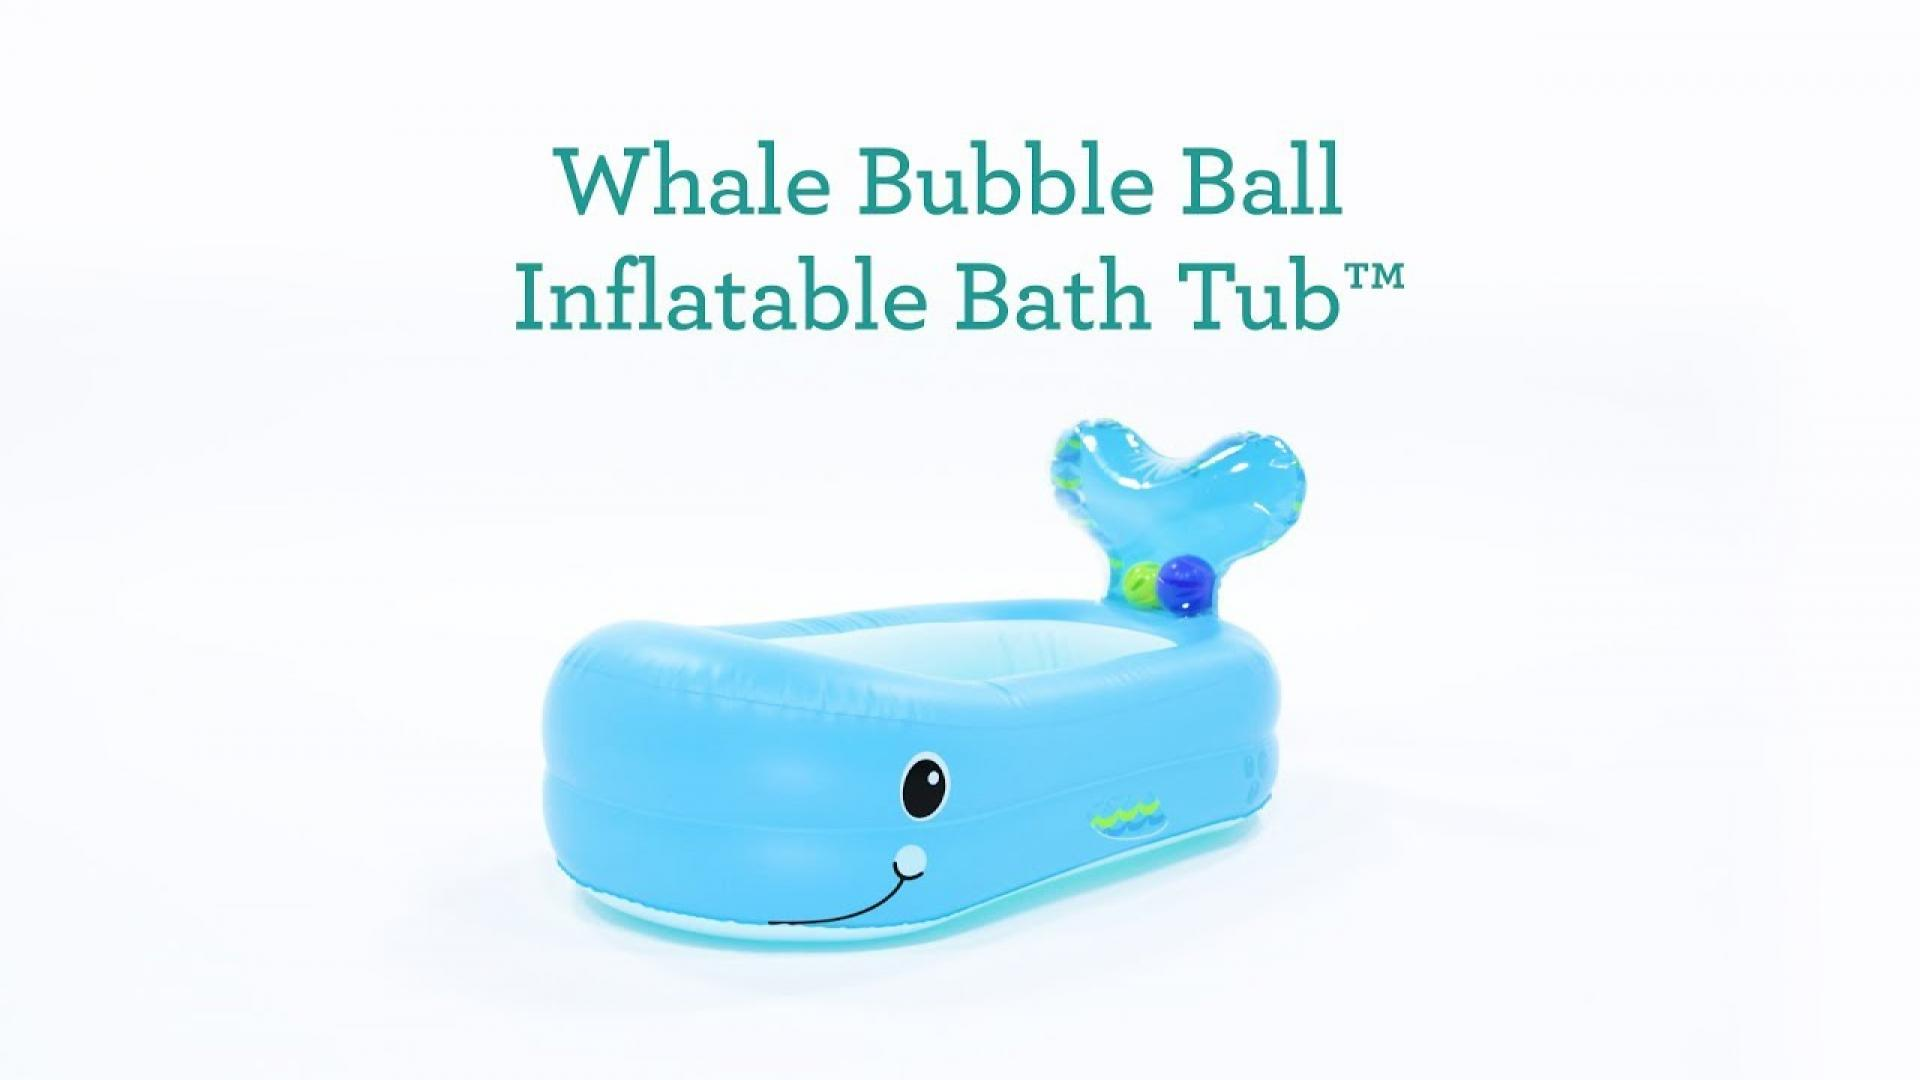 Bed Bath & Beyond TV - Watch: Whale Bubble Ball Inflatable Bath Tub™